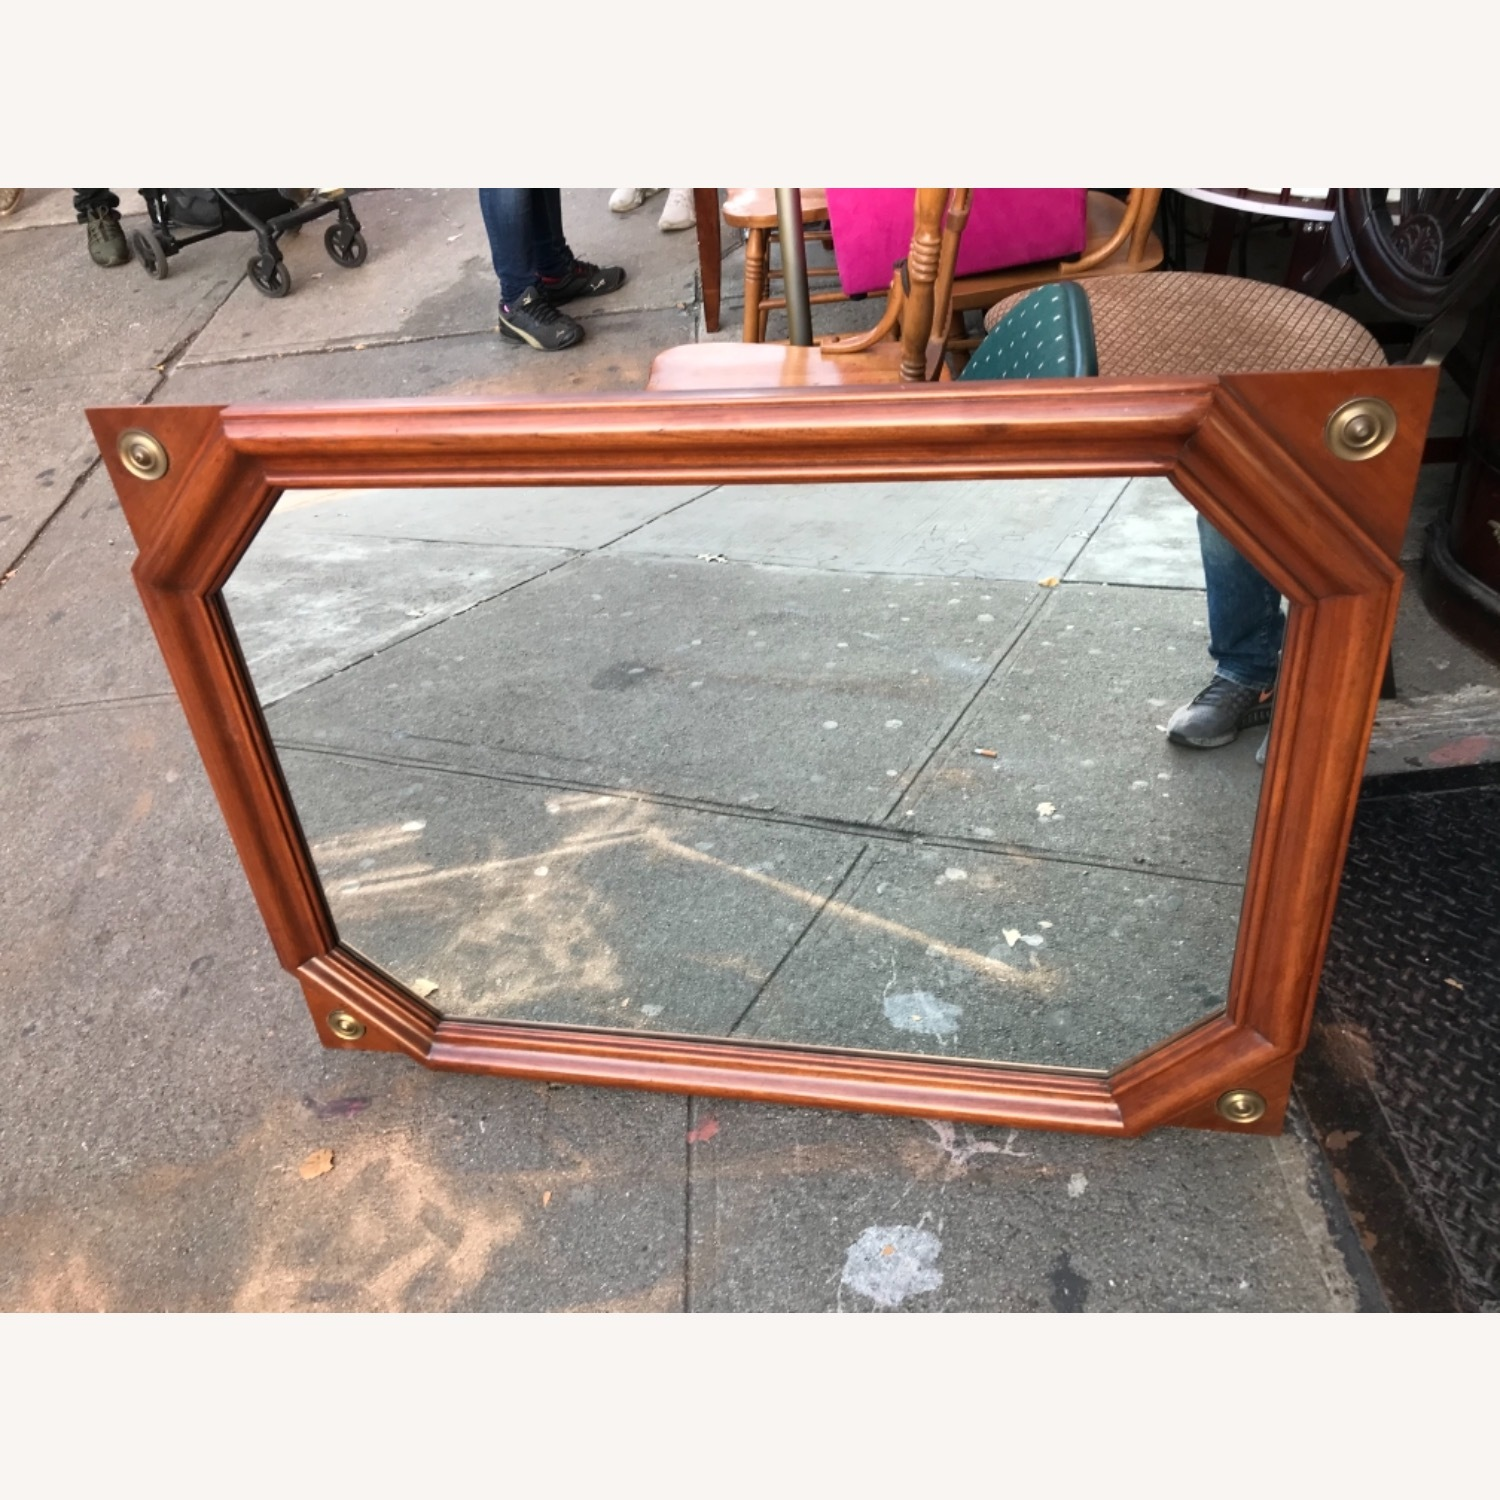 Vintage 1970s Wooden Framed Wall Mirror - image-1